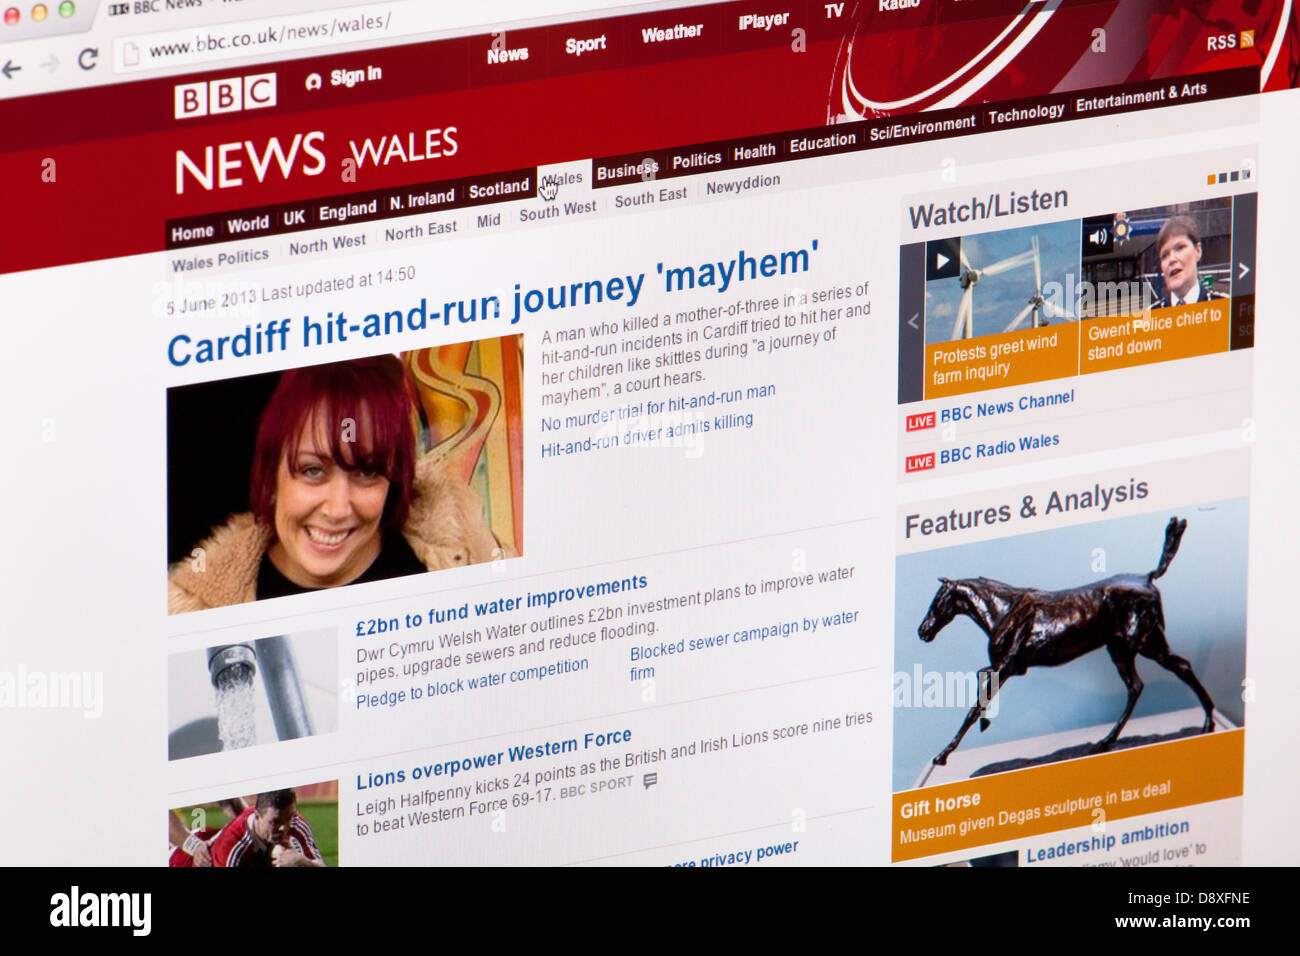 BBC News Wales home page Website or web page on a laptop screen or computer monitor - Stock Image